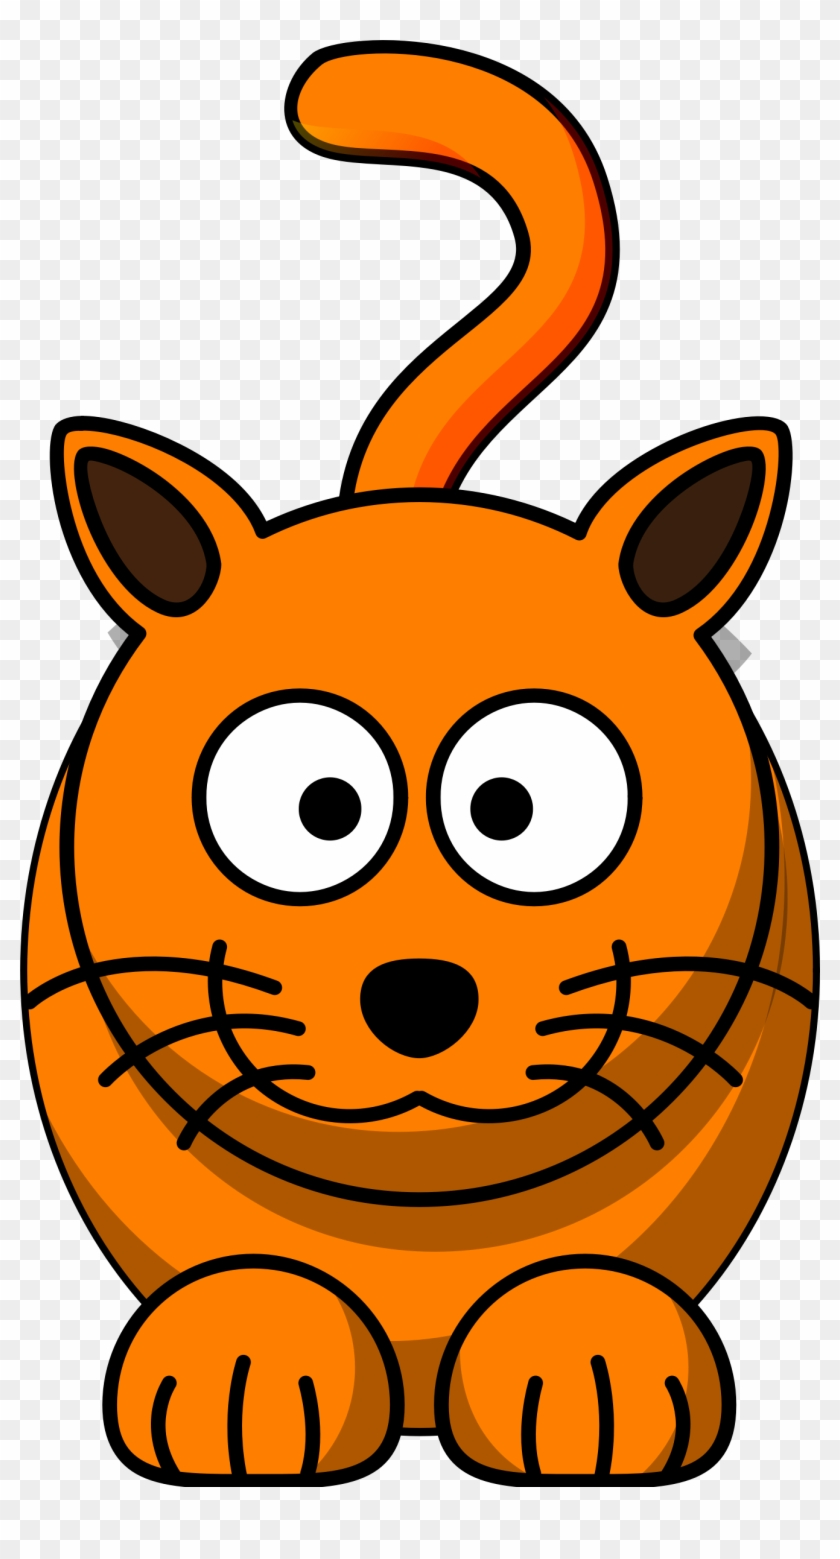 Clipart Cartoon Cats Cat - Cartoon Cat Clip Art #12323